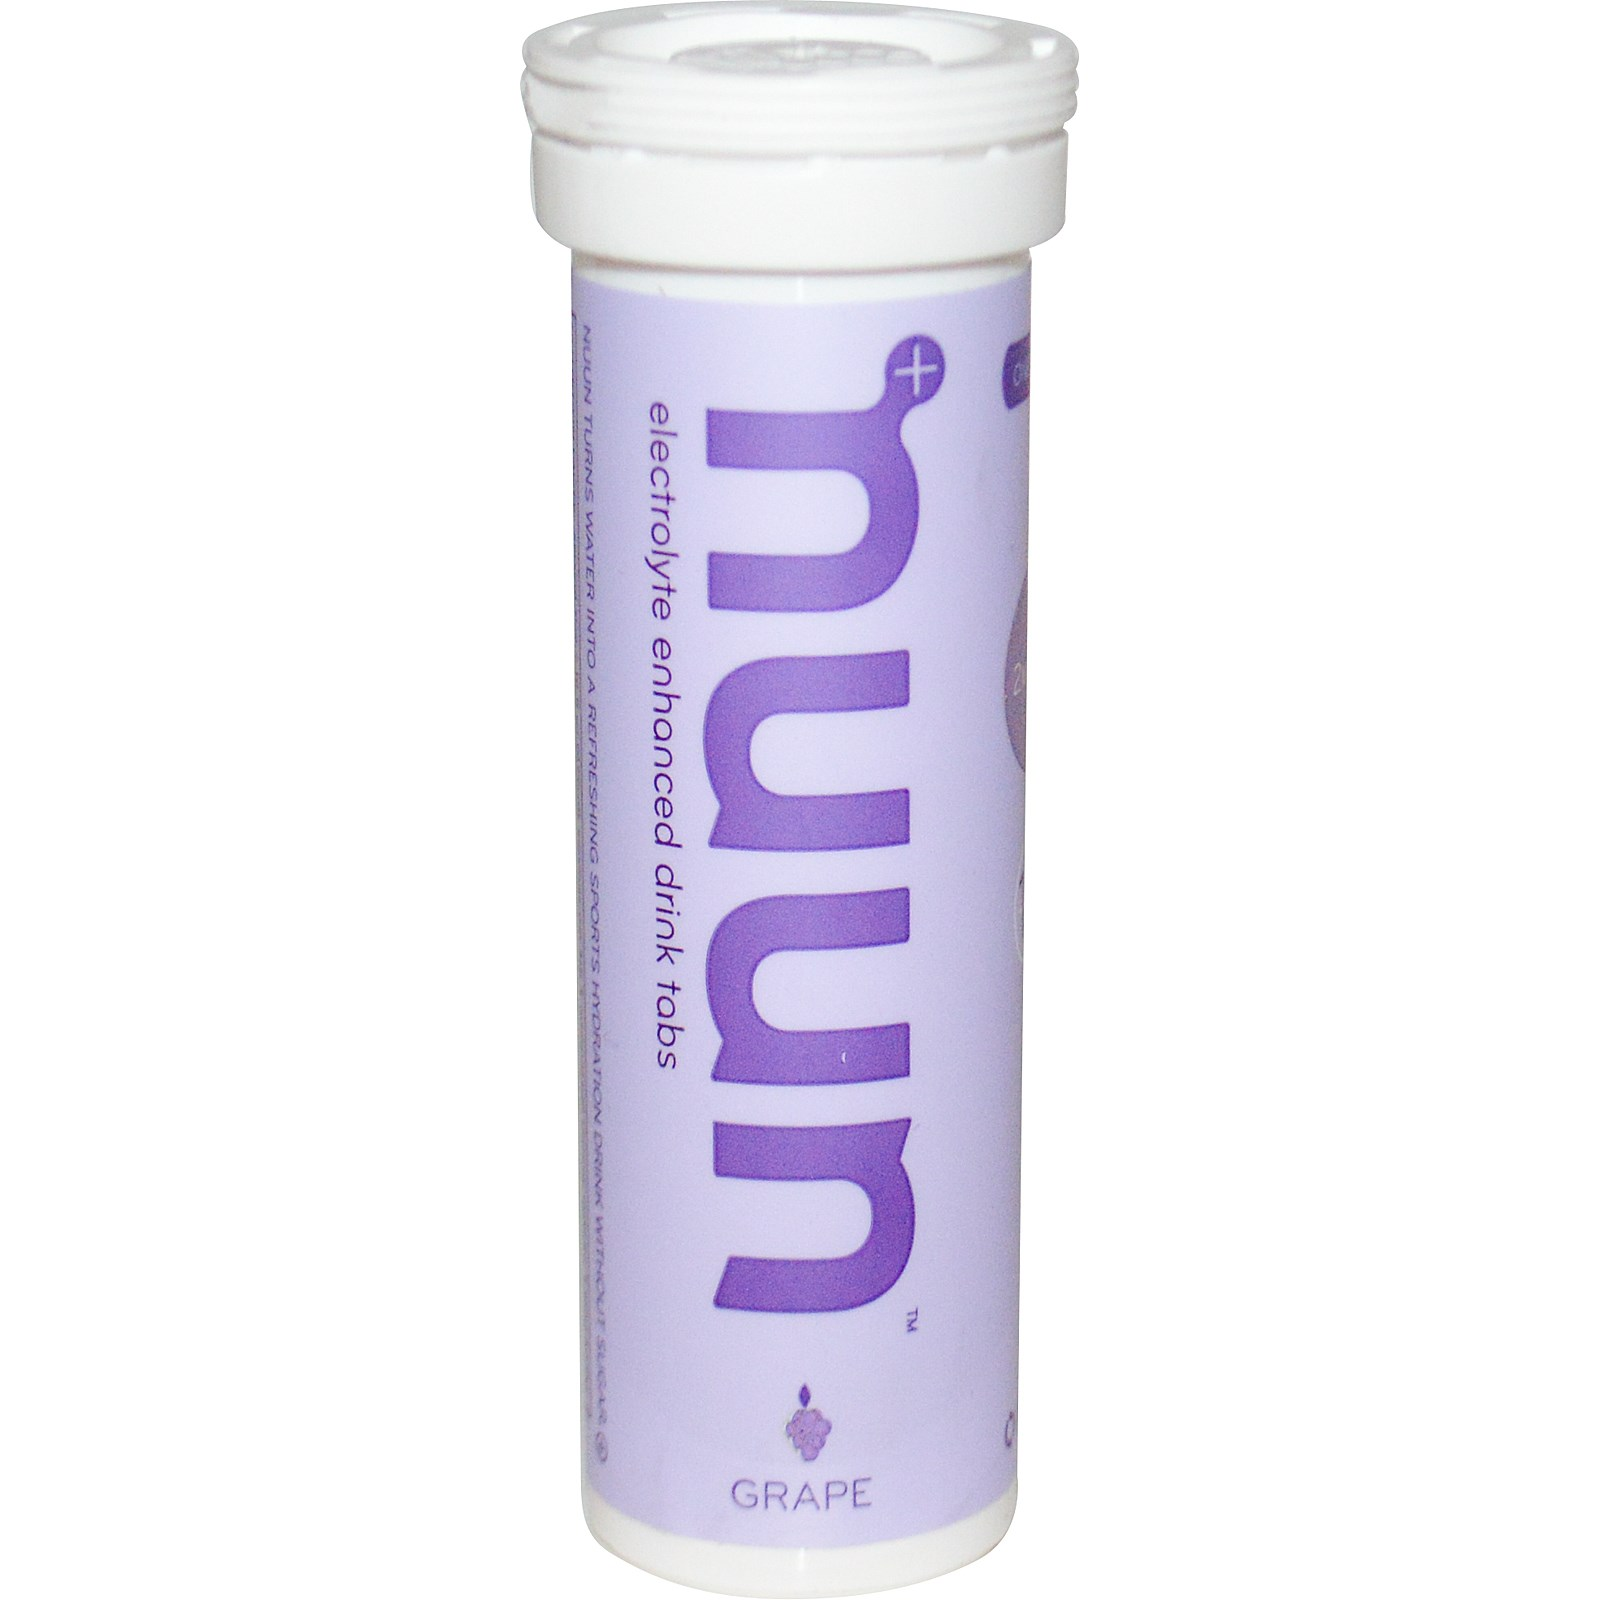 Nuun Grape Tablet